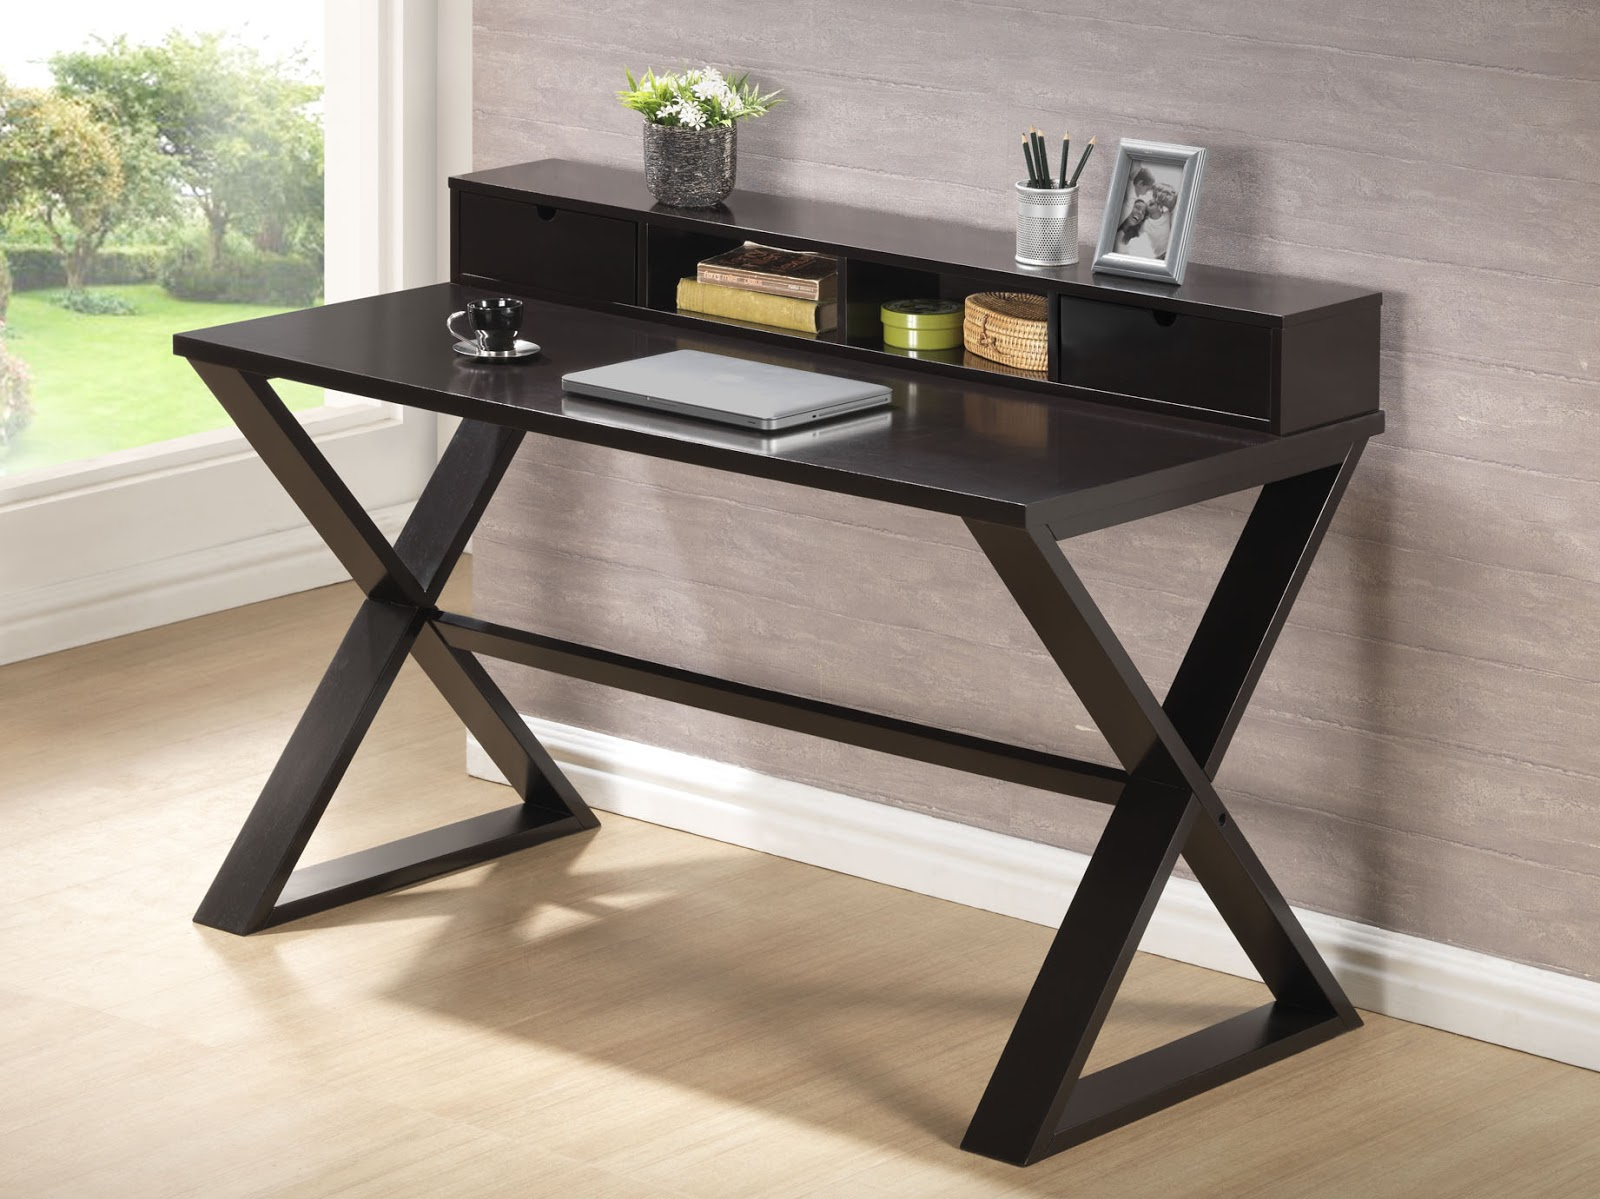 | Interior Express Outlet Blog: Affordable Modern Writing Desks